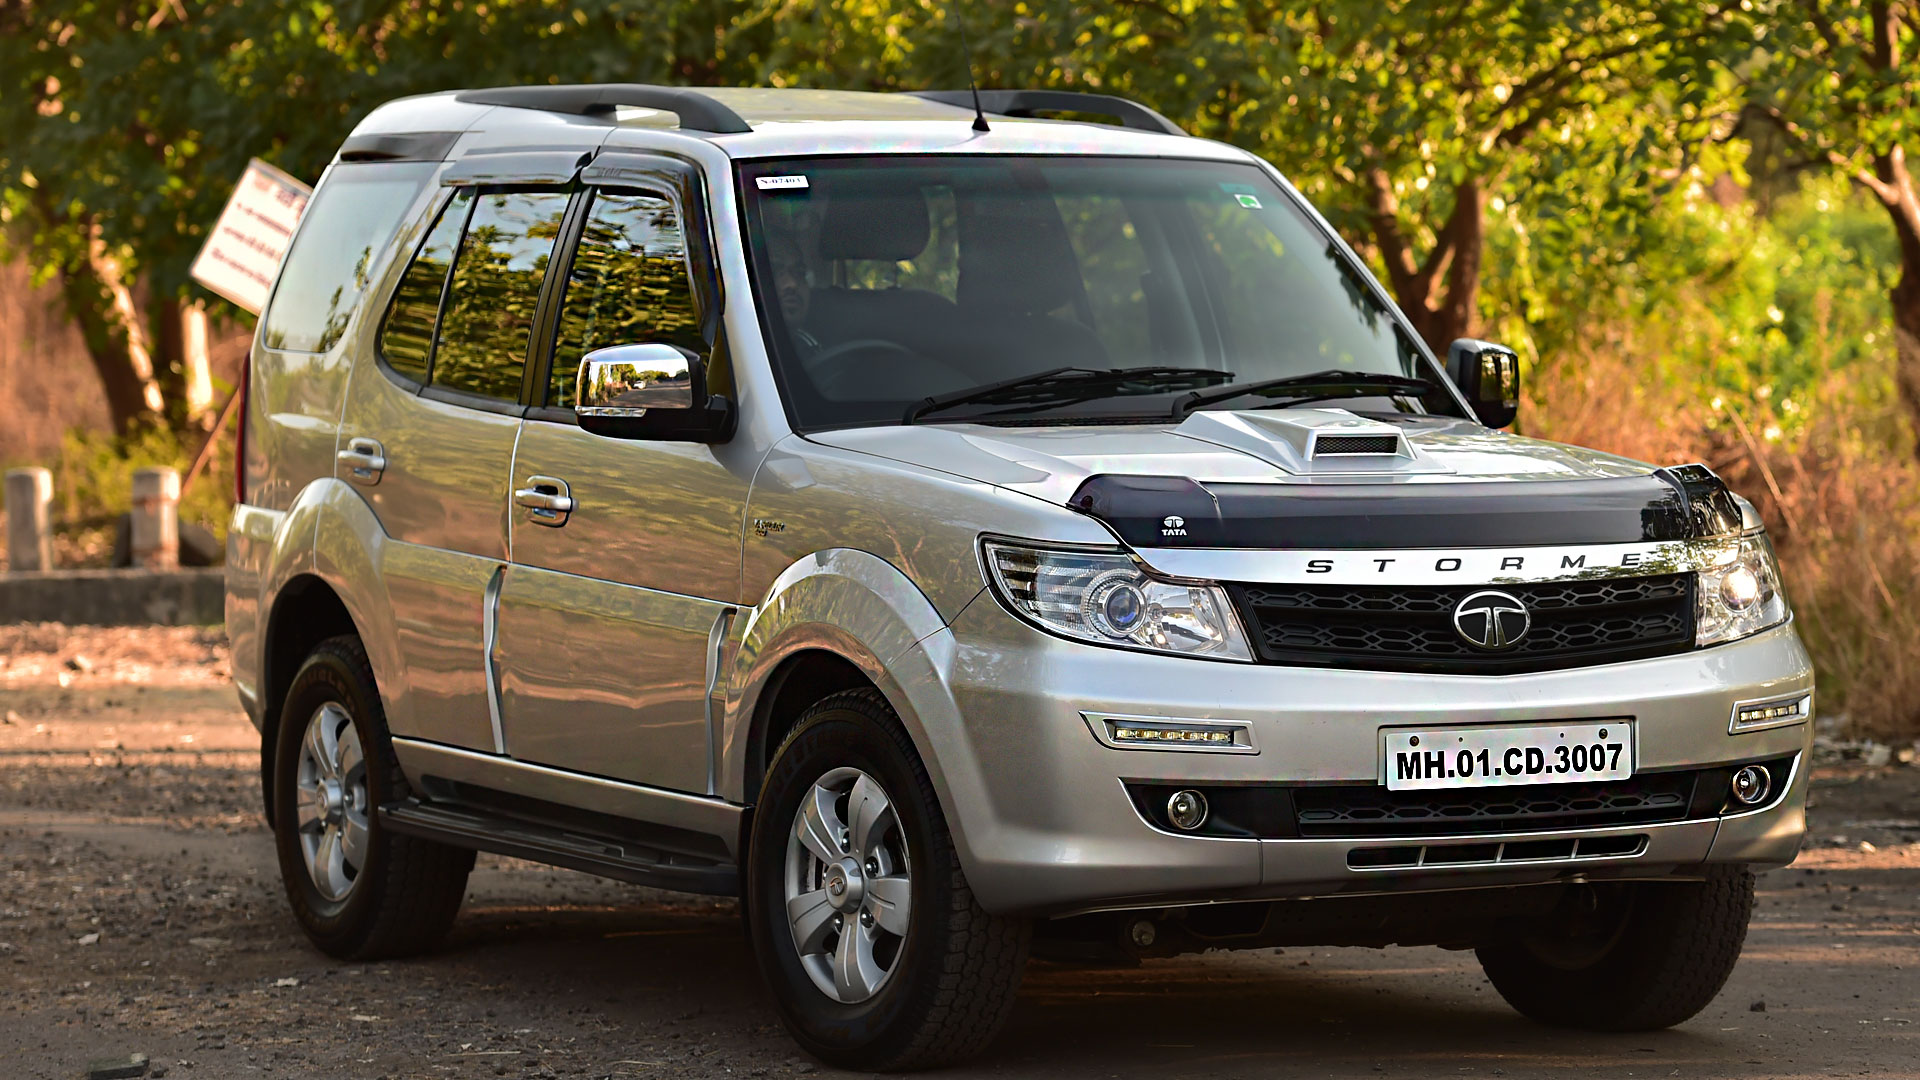 Tata Safari Storme 2016 VX BS4 4x4 Compare